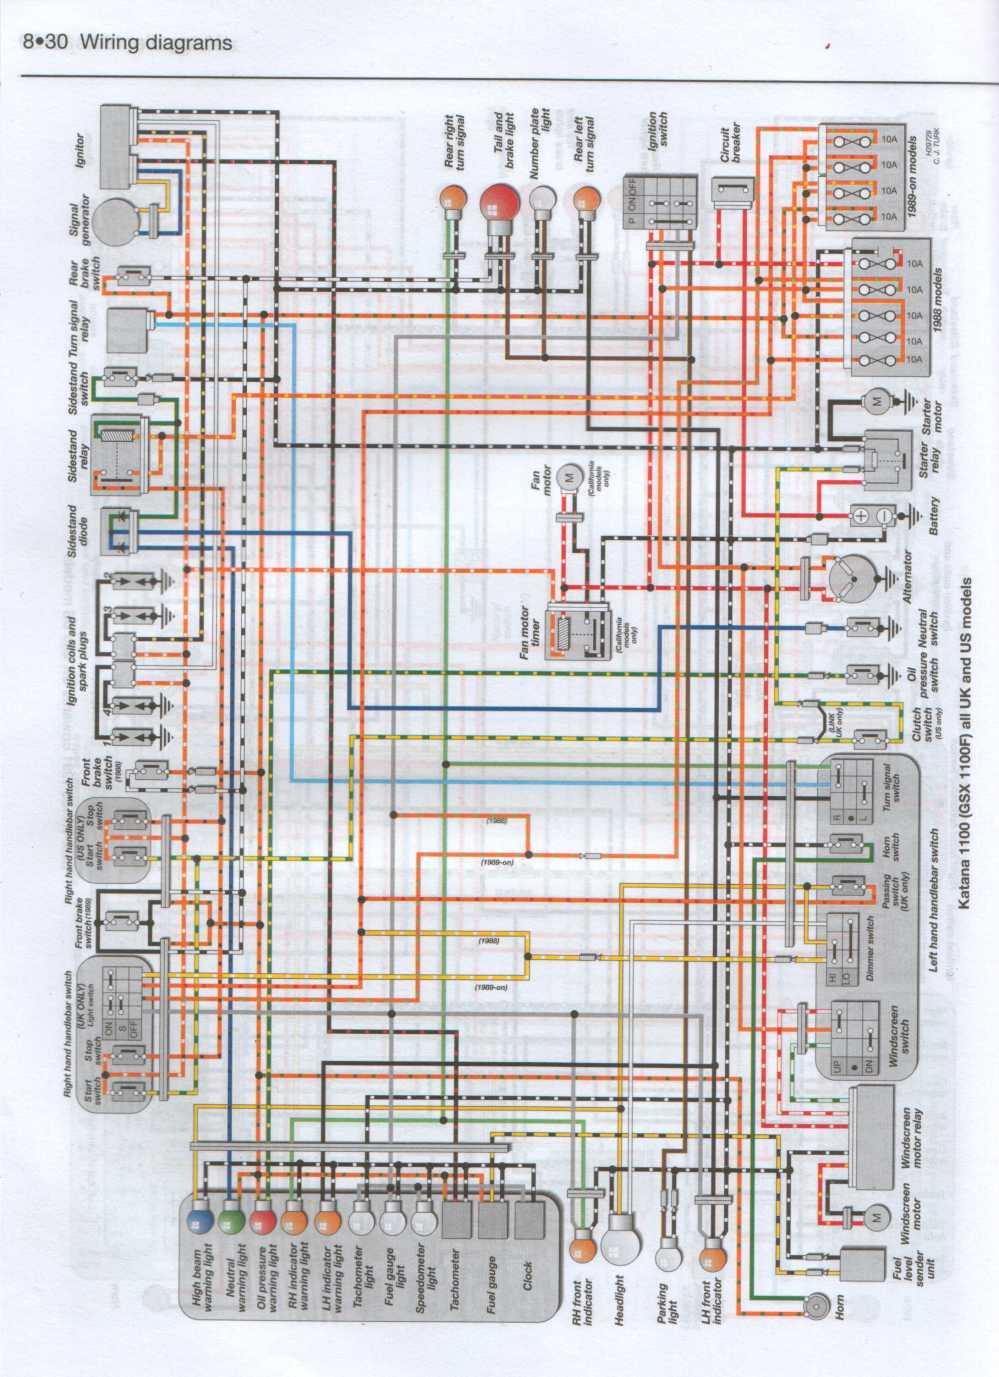 medium resolution of suzuki gsx 750 wiring diagram wiring library rh 14 fulldiabetescare org suzuki gt750 wiring diagram suzuki